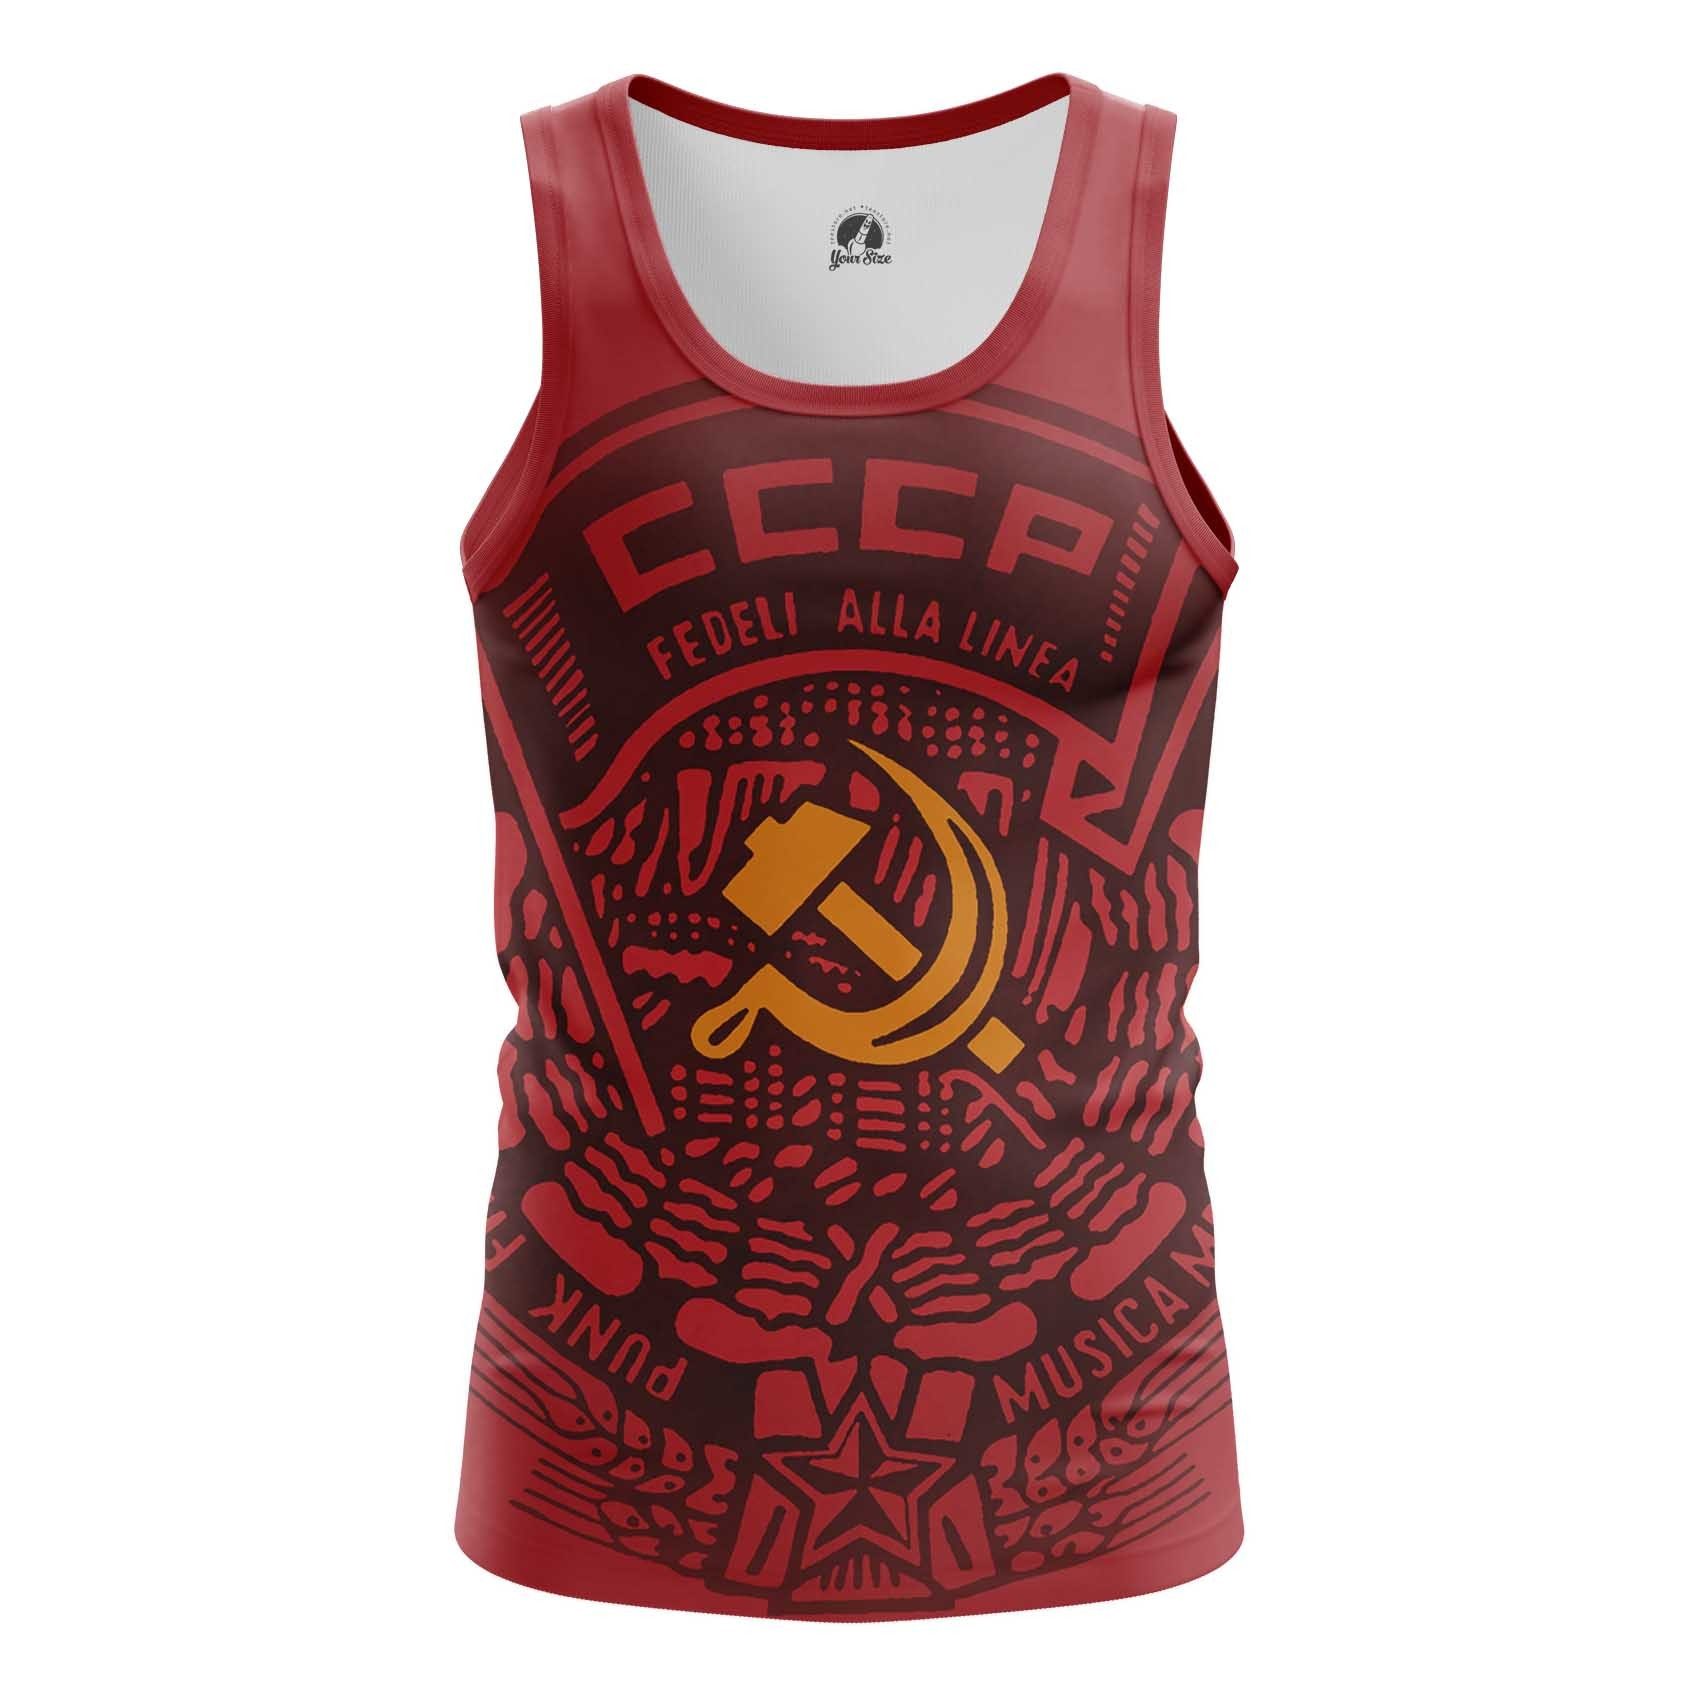 Merchandise Men'S T-Shirt Ussr Red Hammer And Sickle